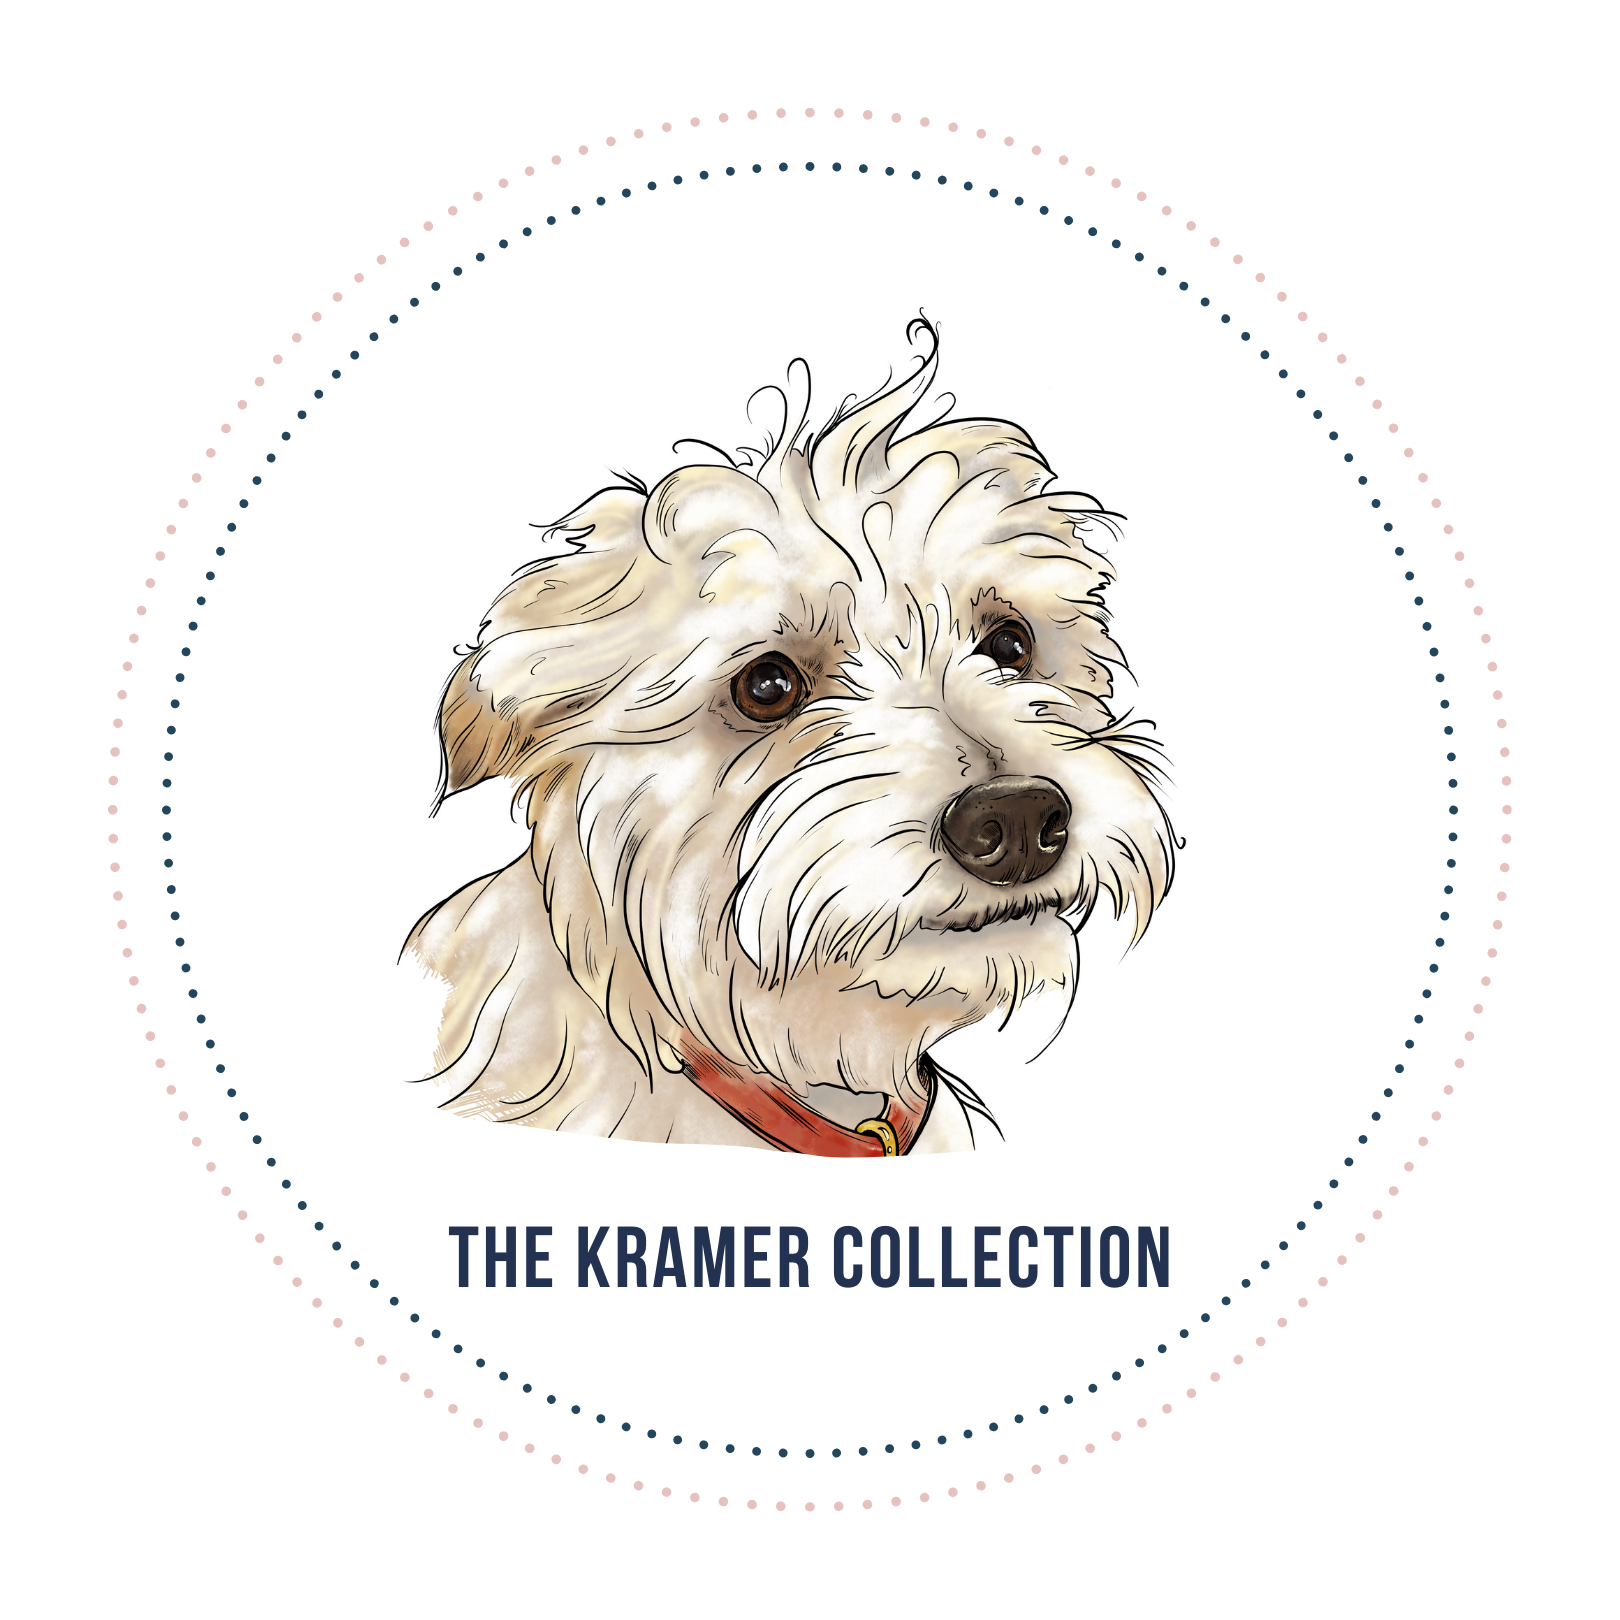 The Kramer Collection